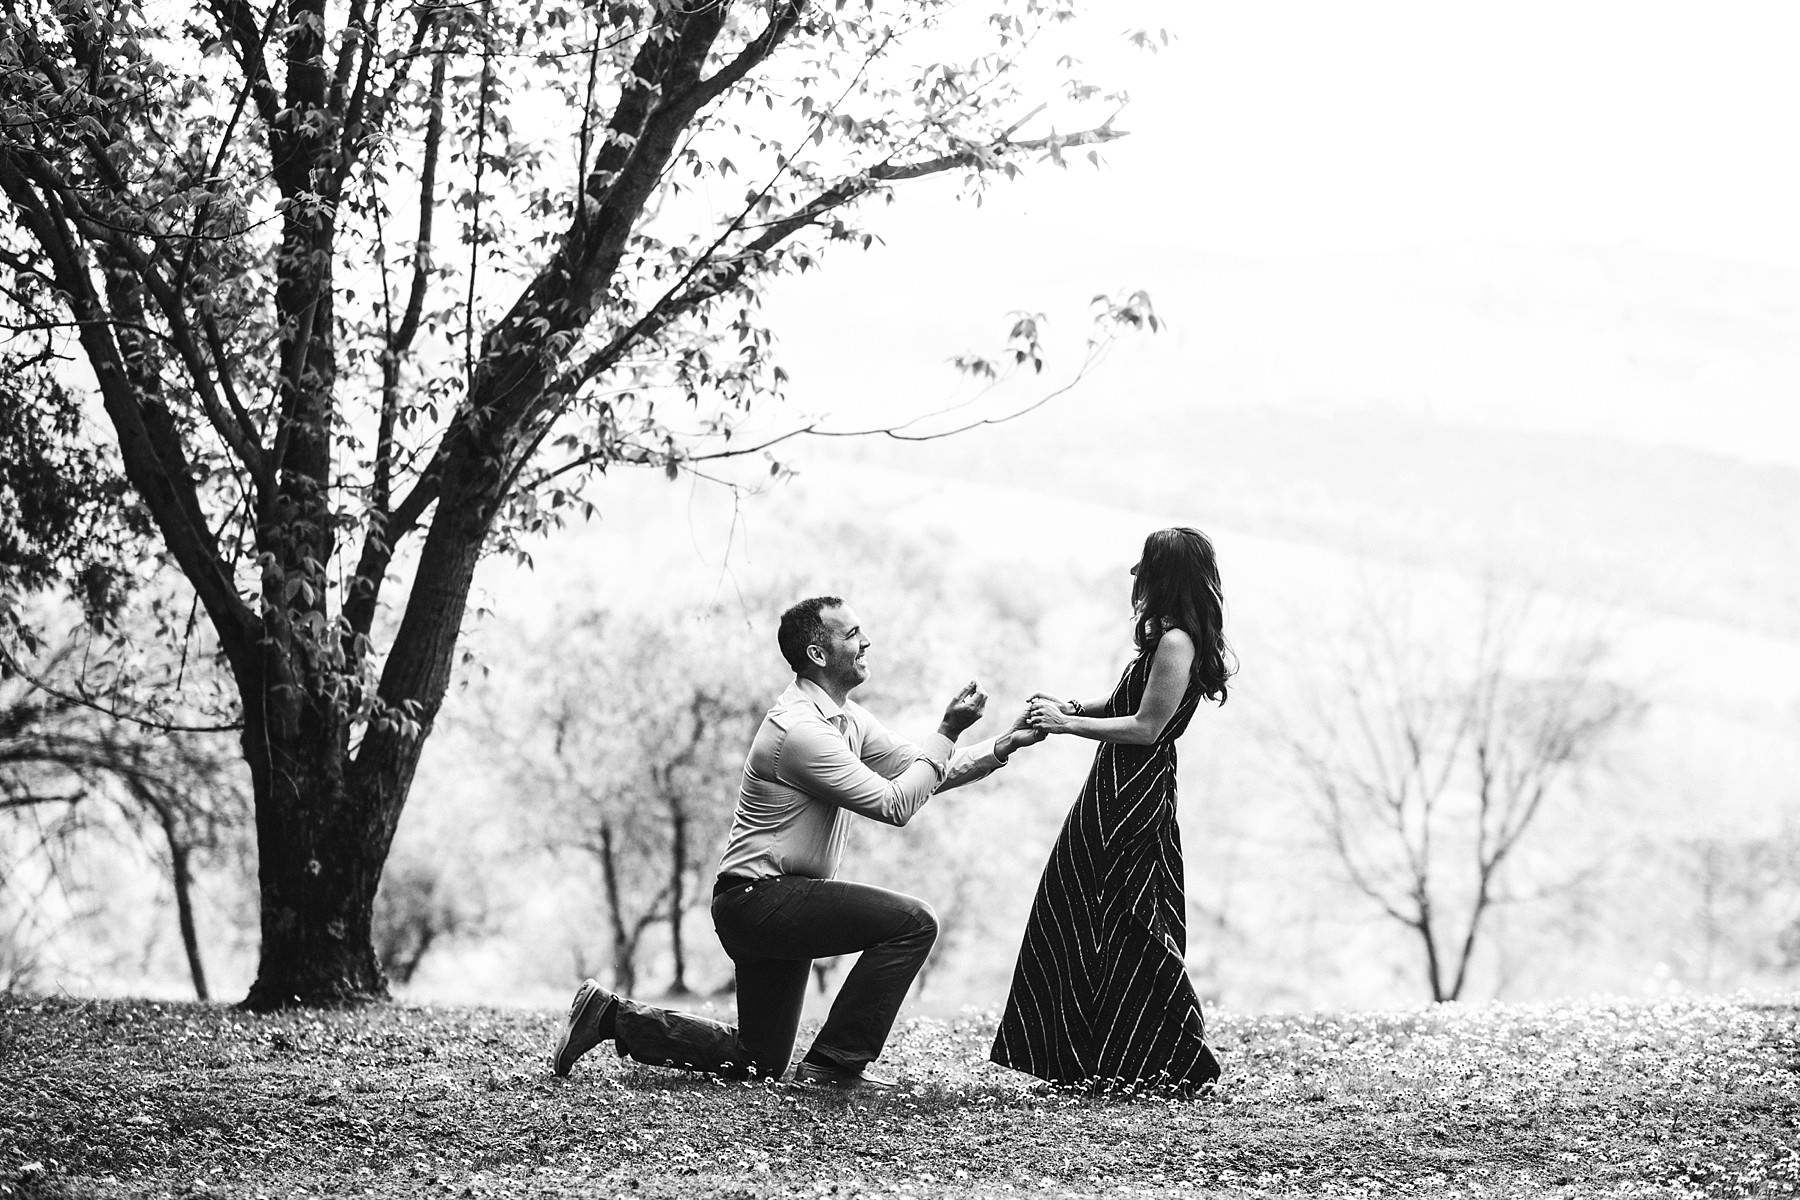 Unforgettable surprise proposal photo in Tuscany countryside at Tenuta Nozzole located in Chianti